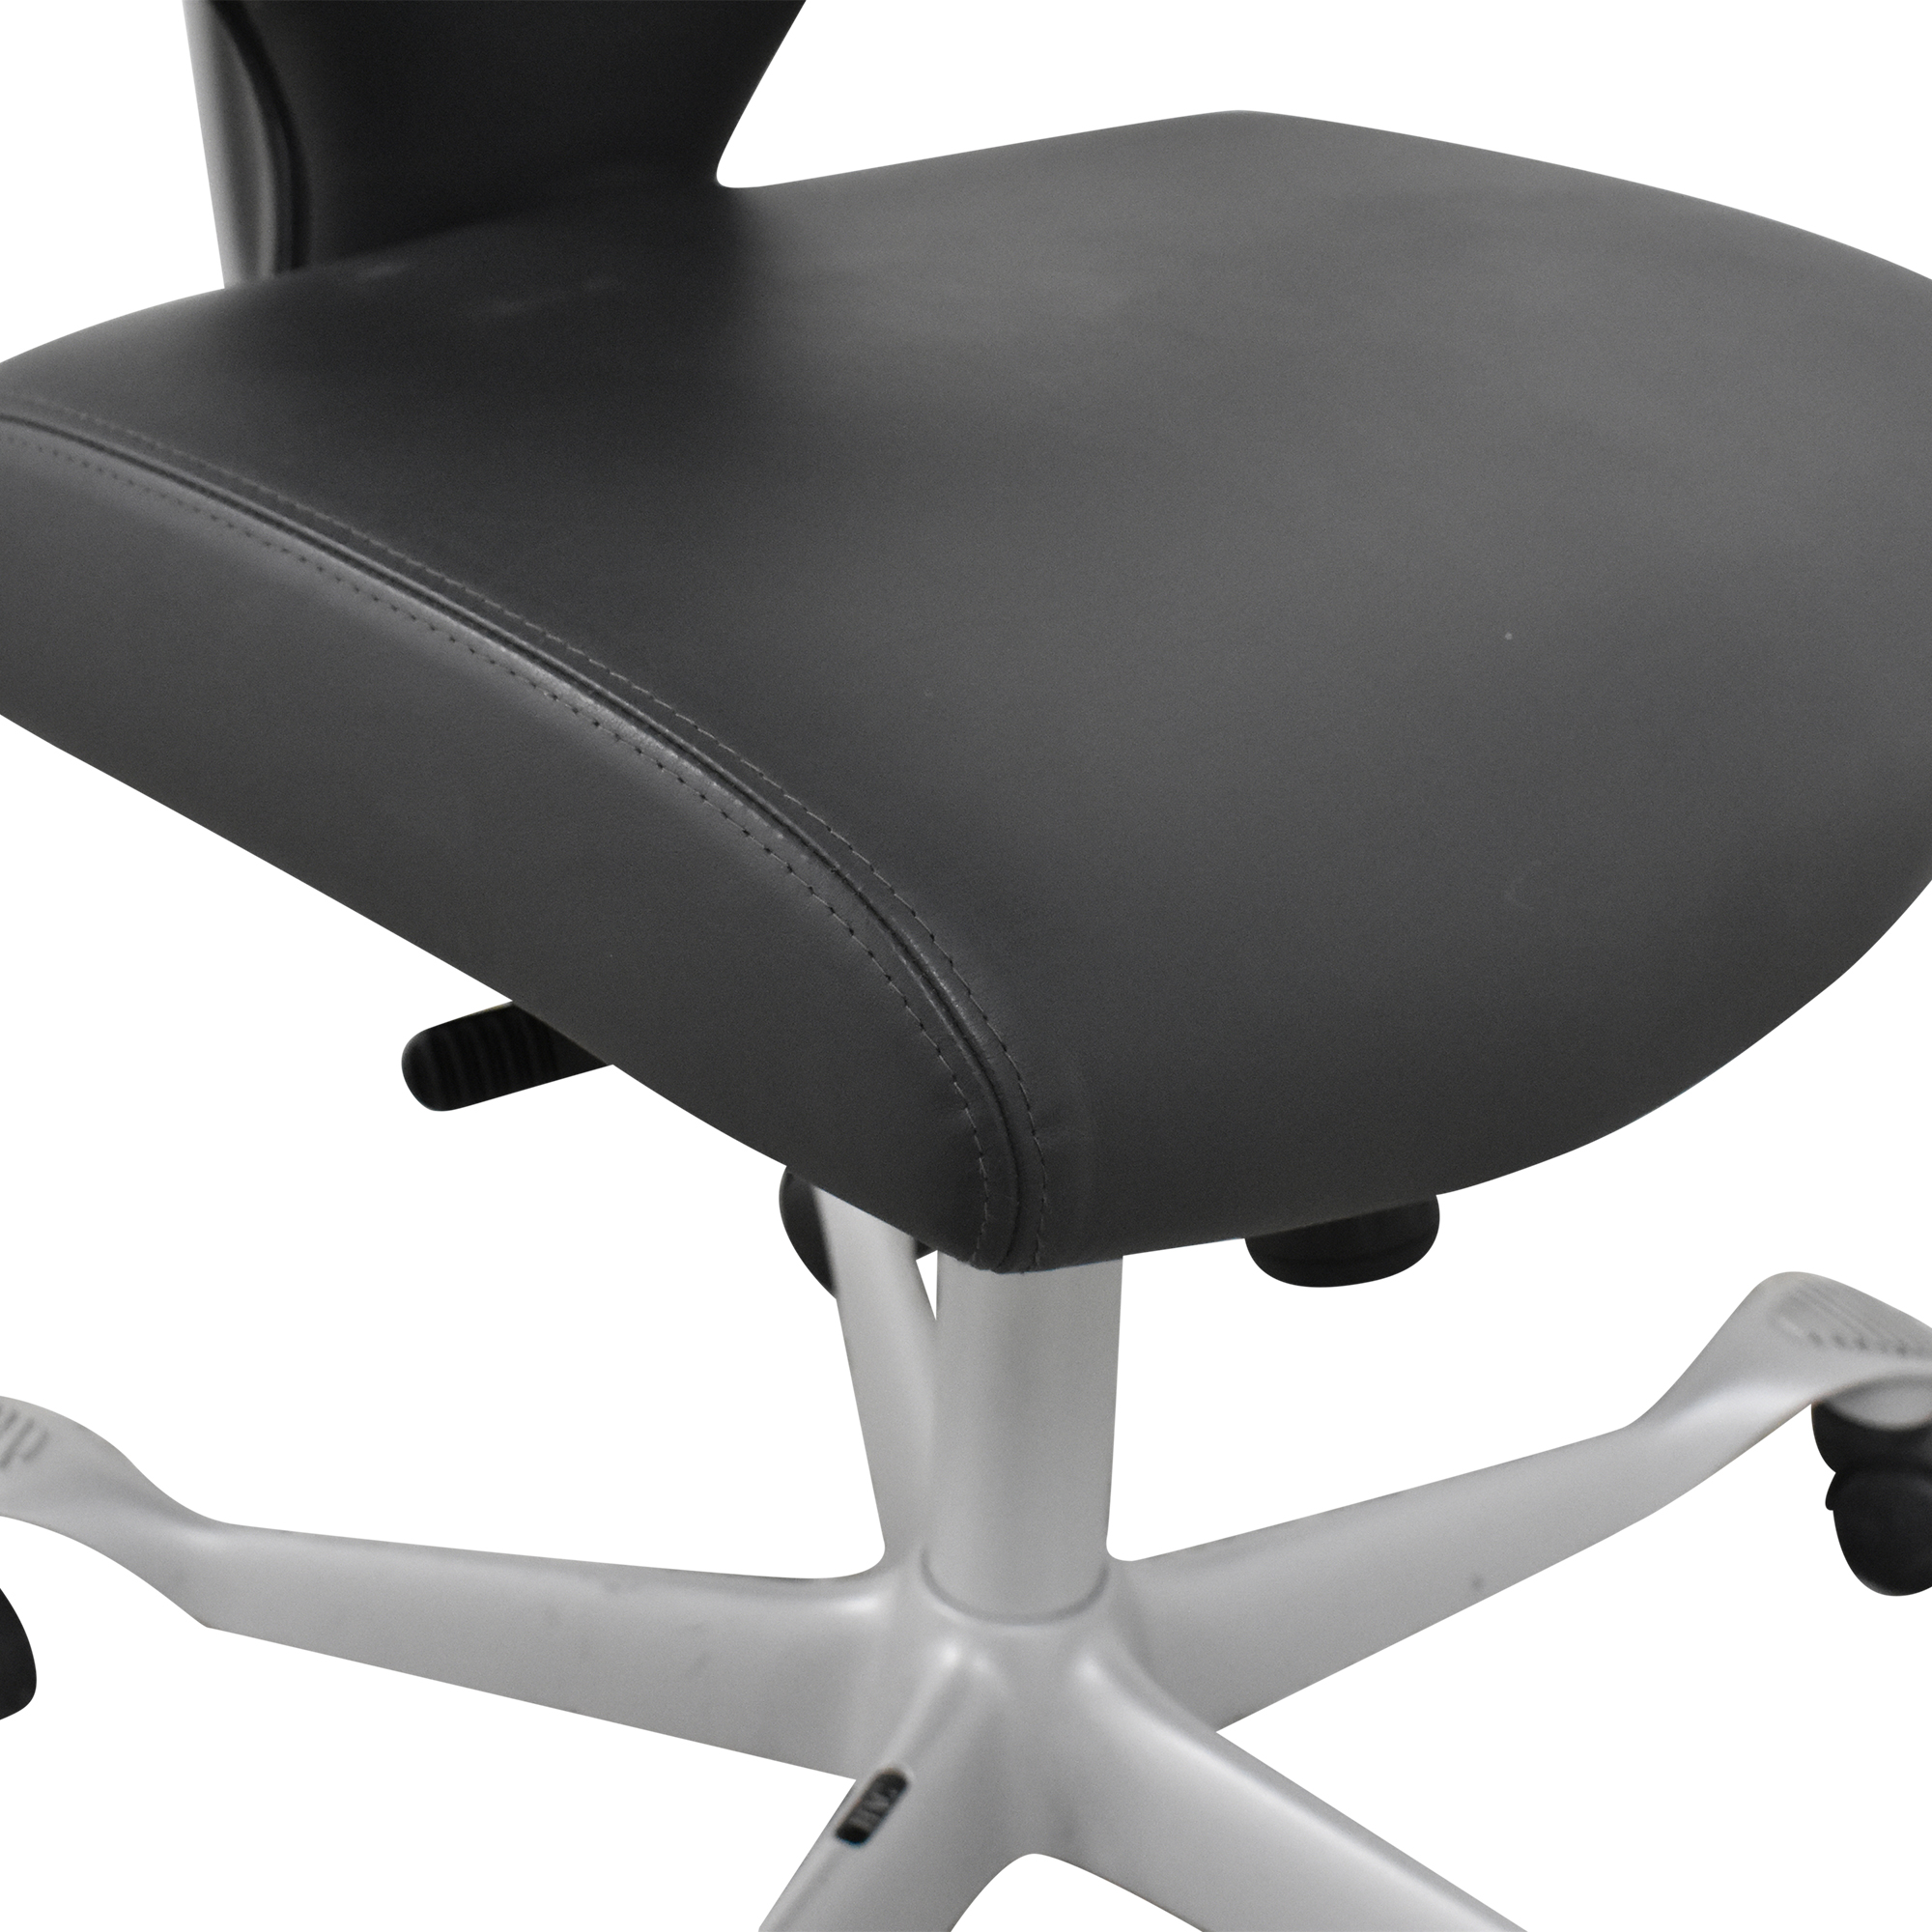 HAG HAG Capisco Adjustable Swivel Chair ma